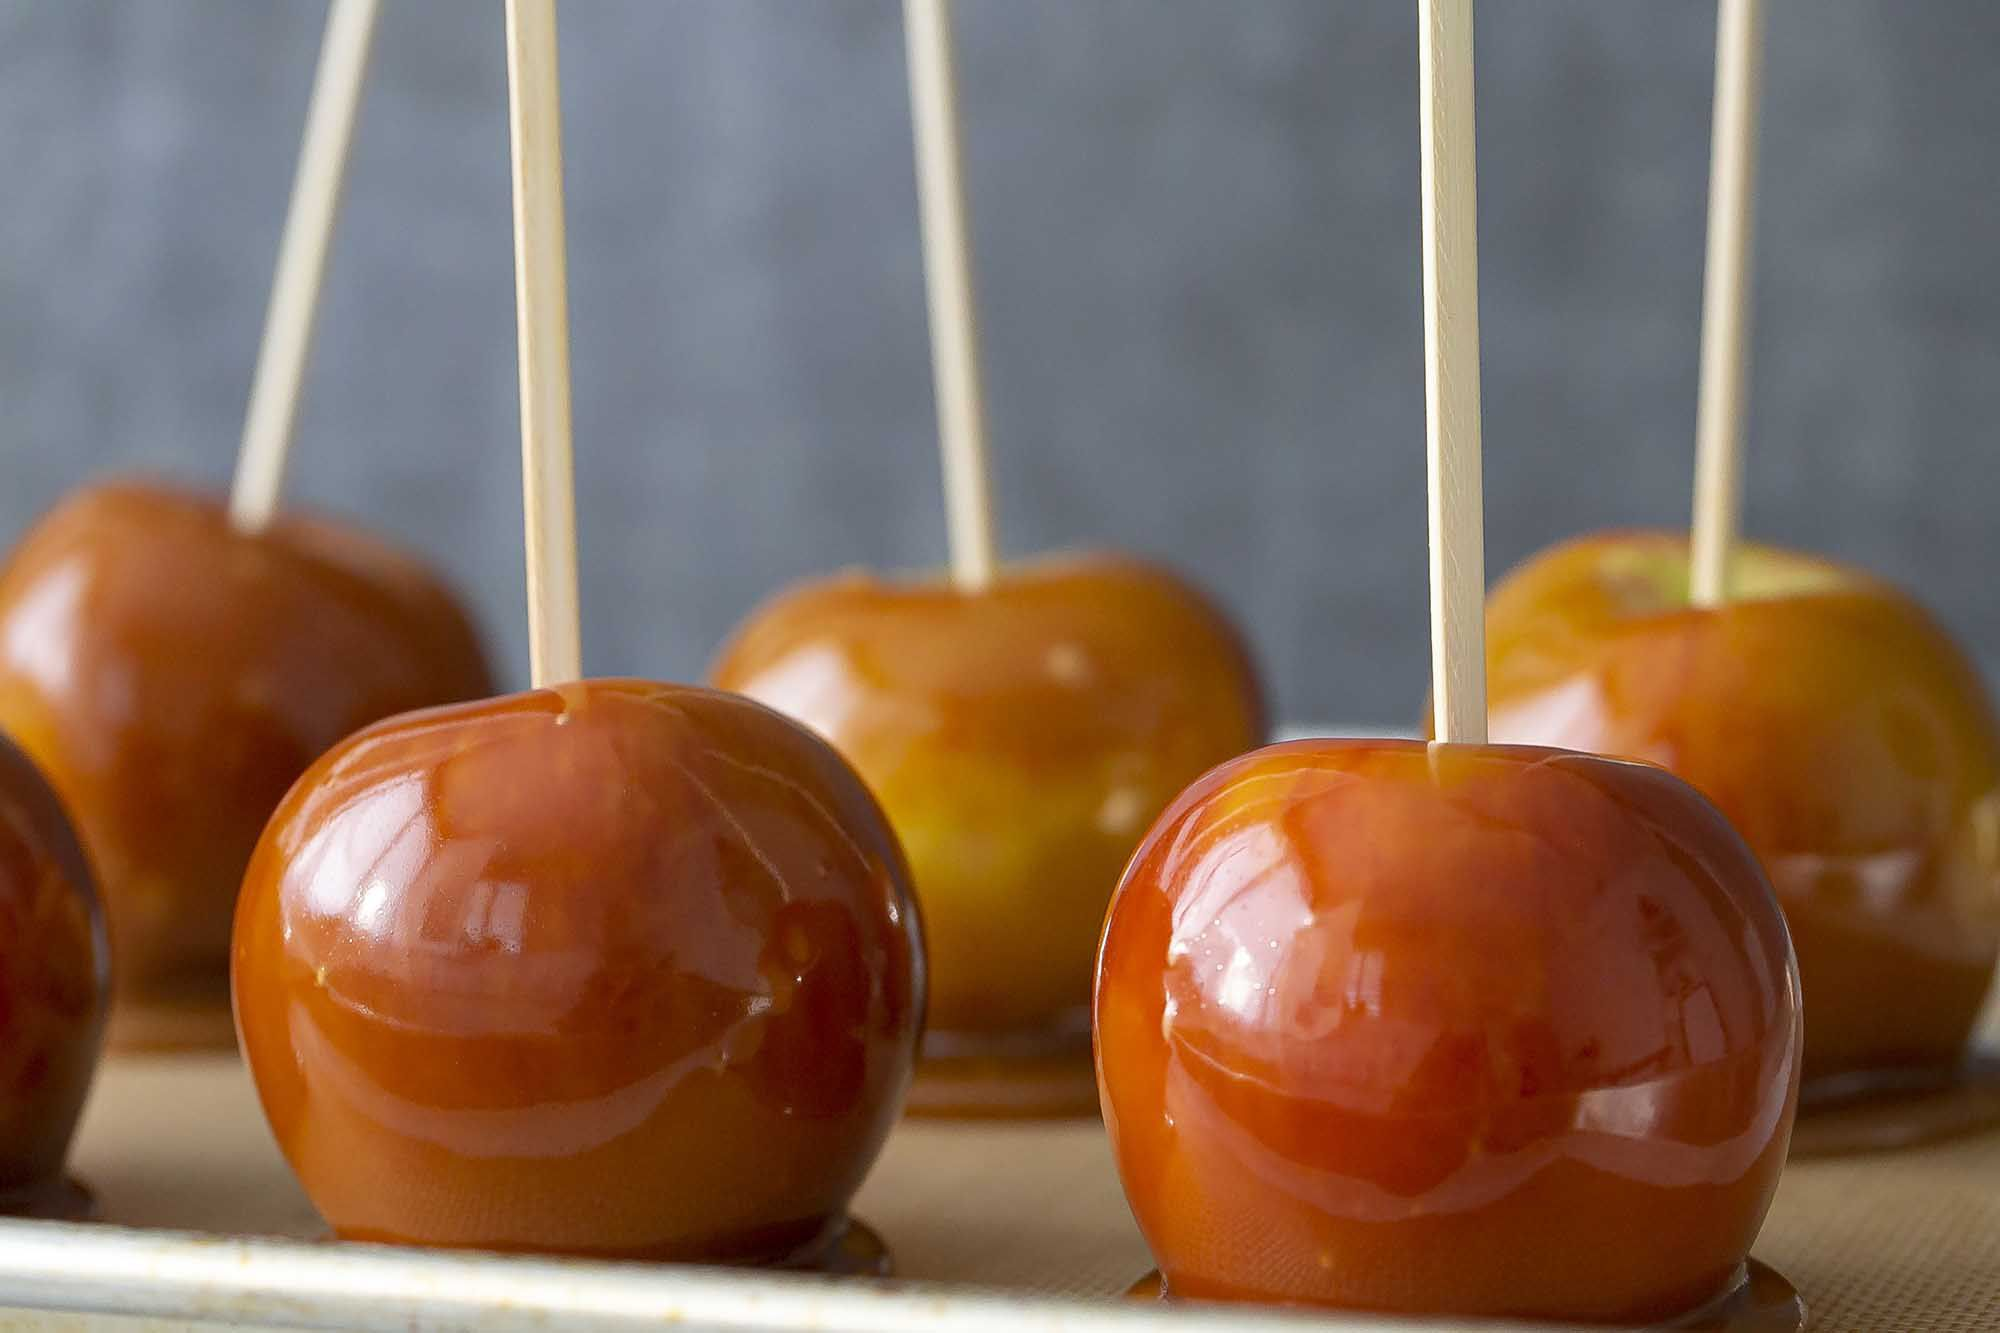 How to Make Caramel Apples caramel apples finished product